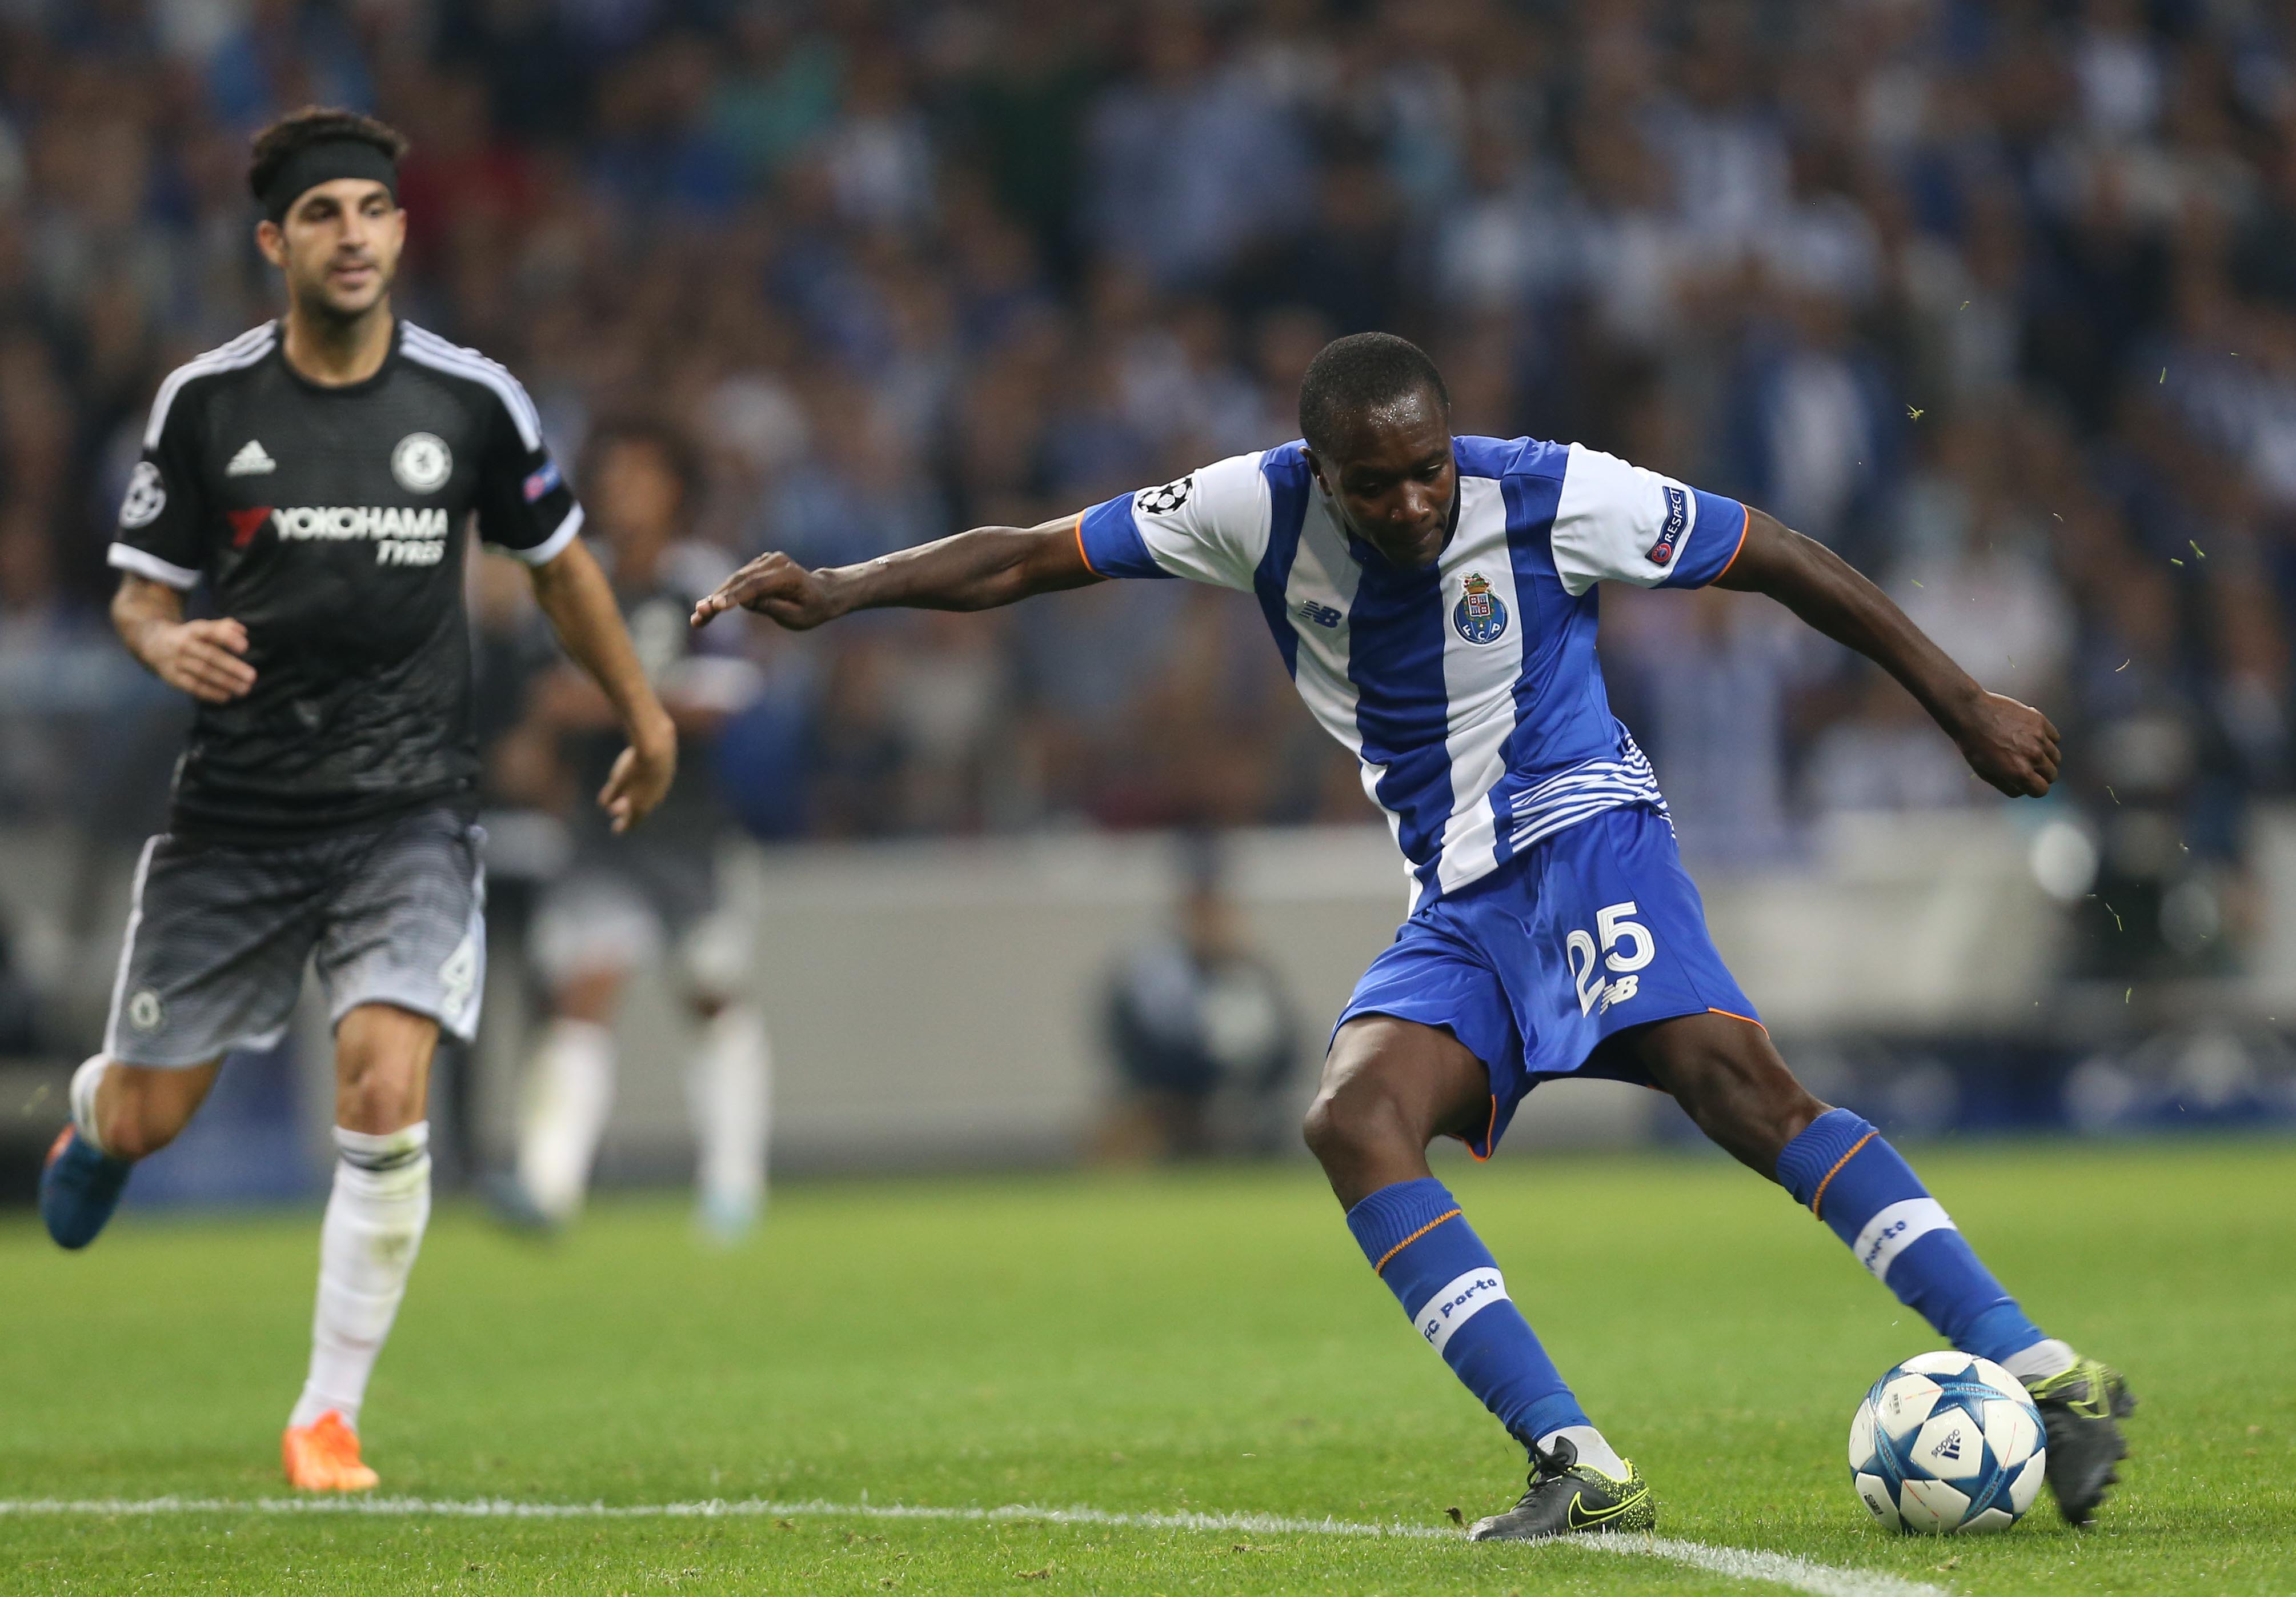 FOOTBALL : FC Porto vs Chelsea - Ligue des Champions - 29/09/2015